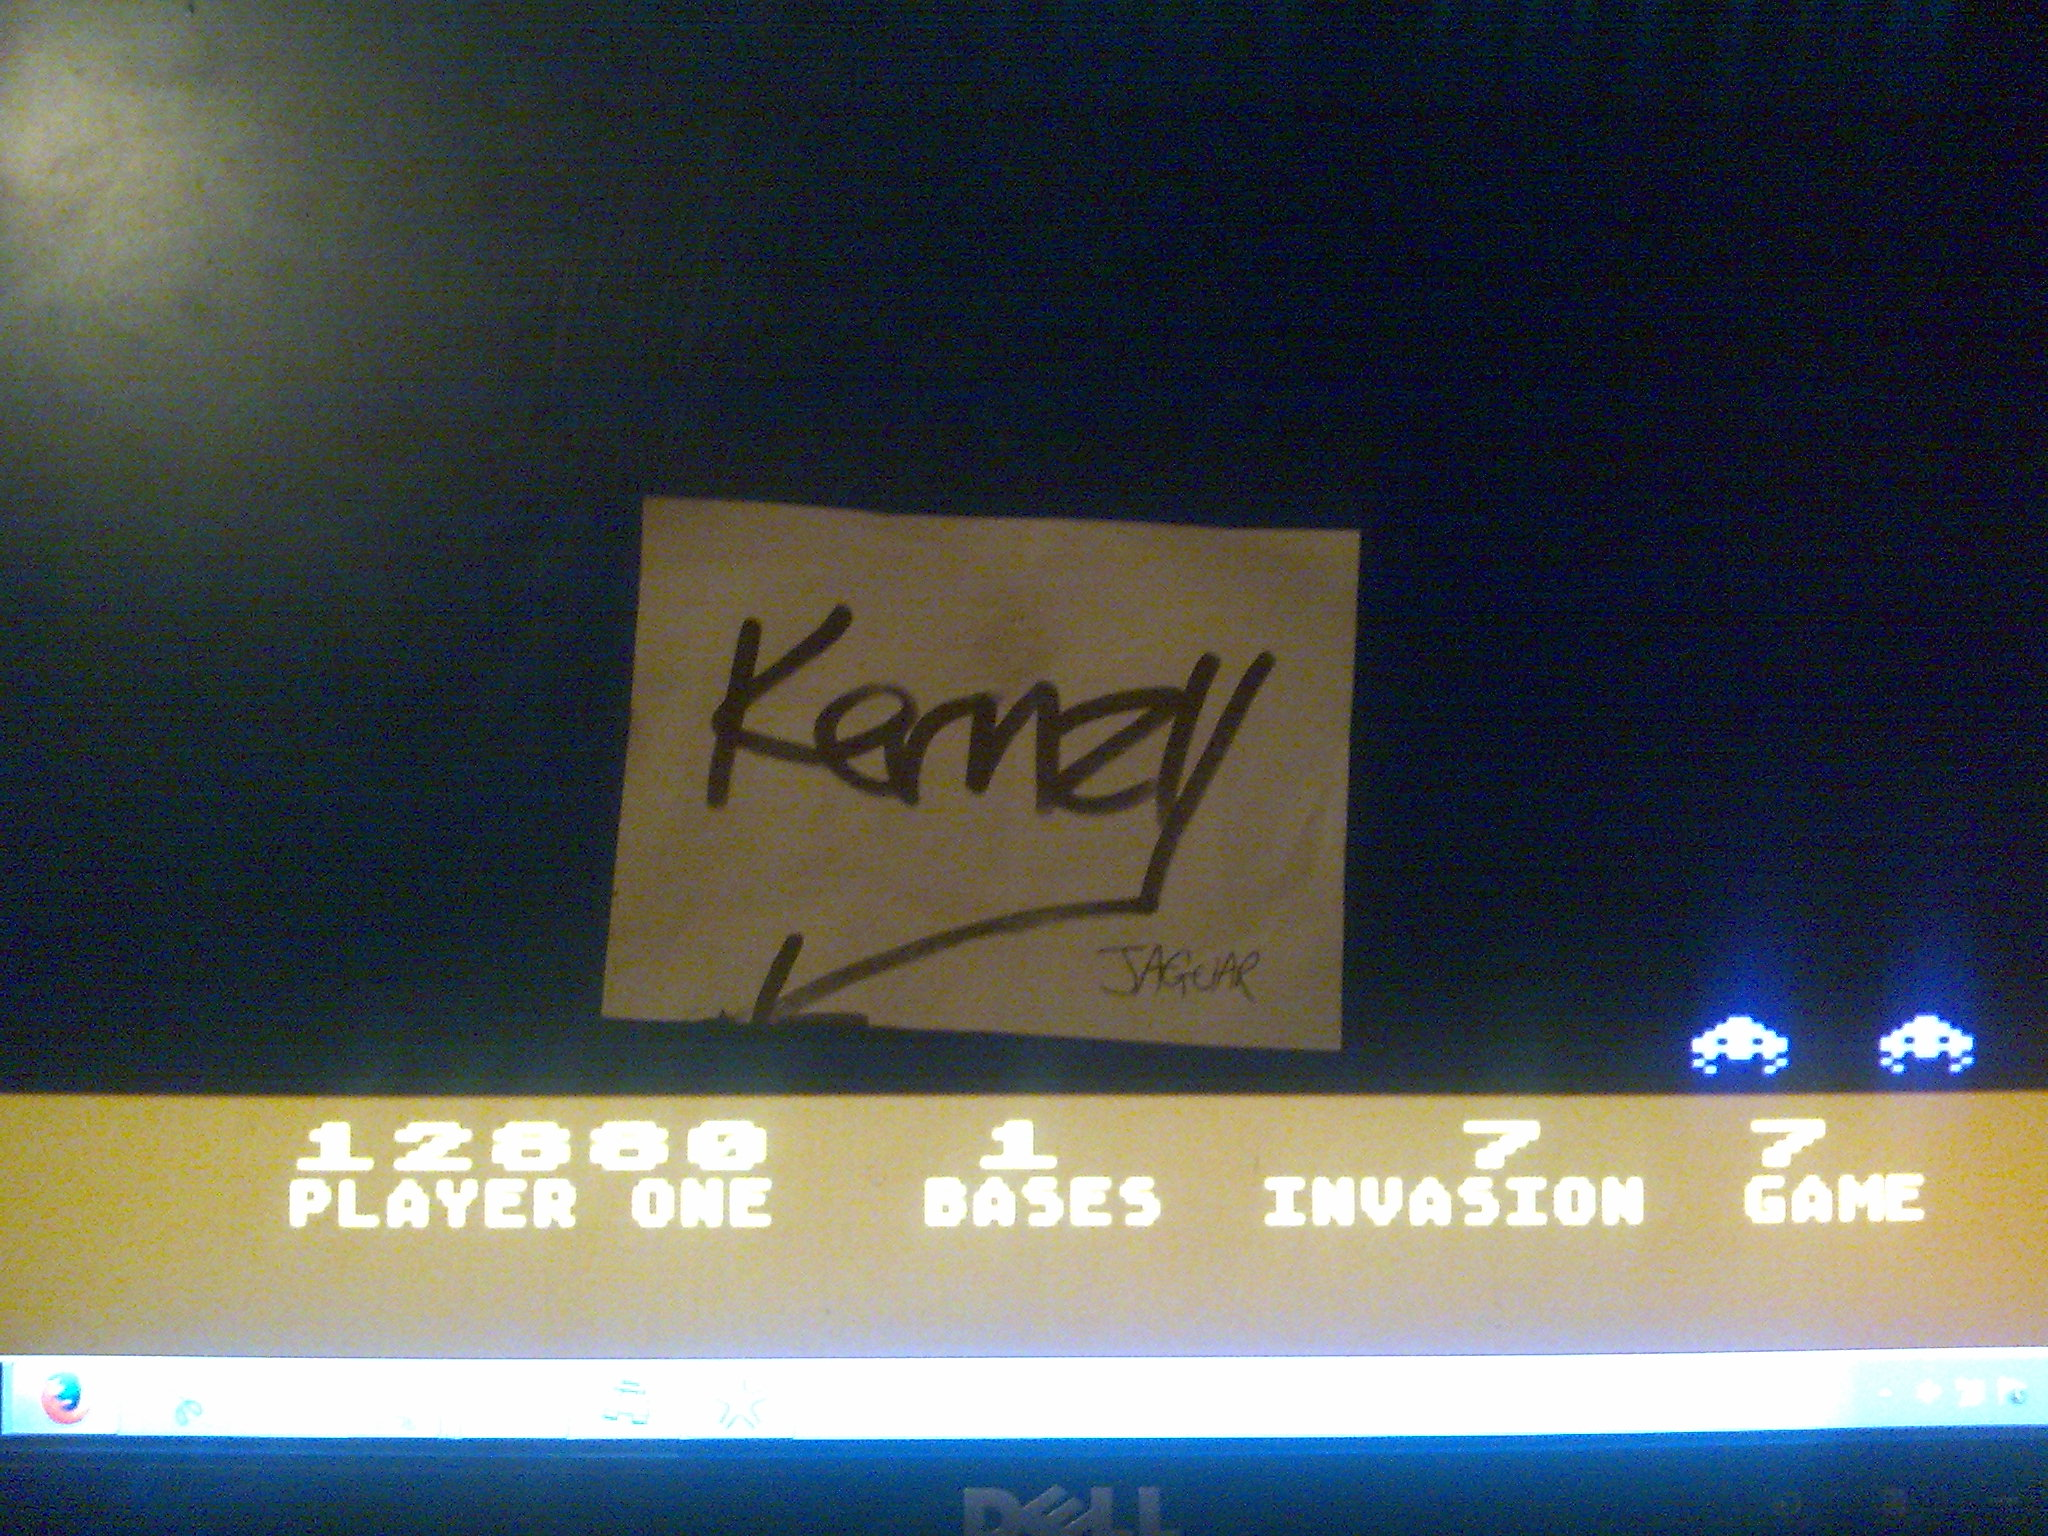 kernzy: Atari Invaders [Game 7] (Atari 400/800/XL/XE Emulated) 12,880 points on 2014-10-21 23:42:01